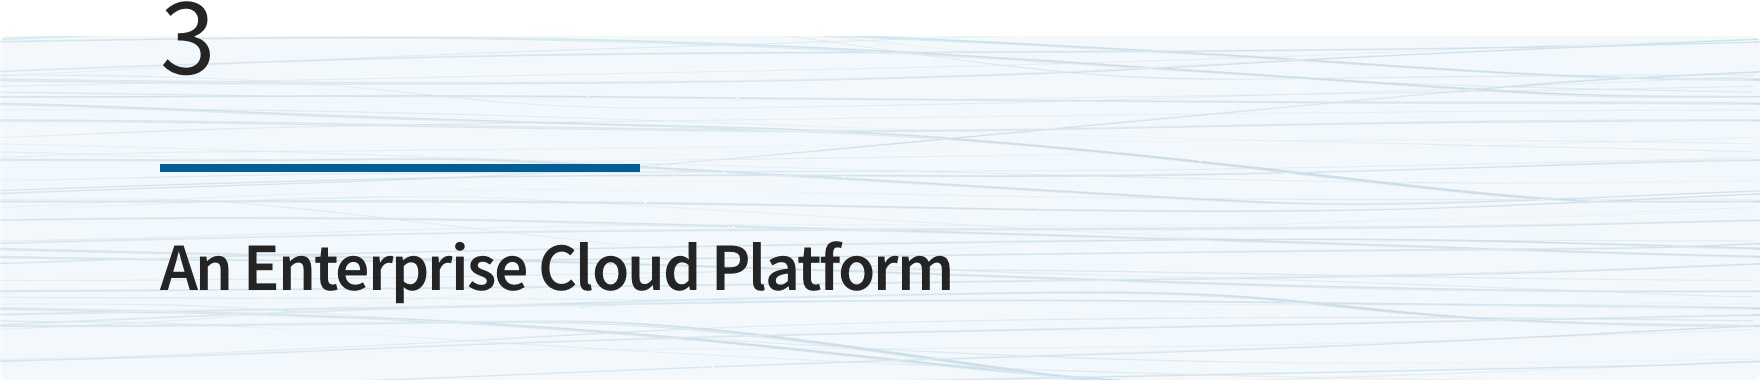 An Enterprise Cloud Platform